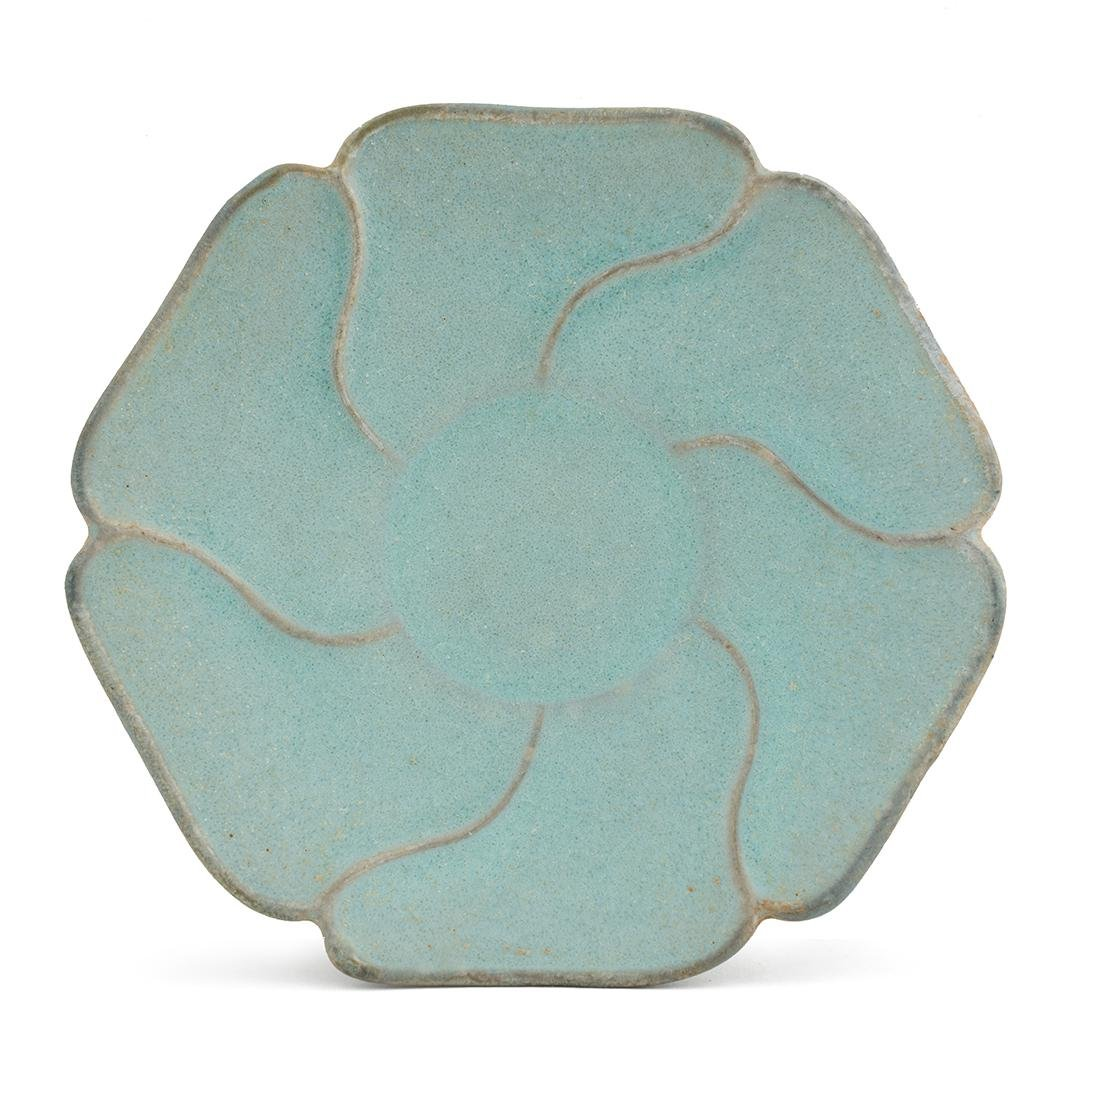 CHINESE RU FLORI-FORM WARE PLATE